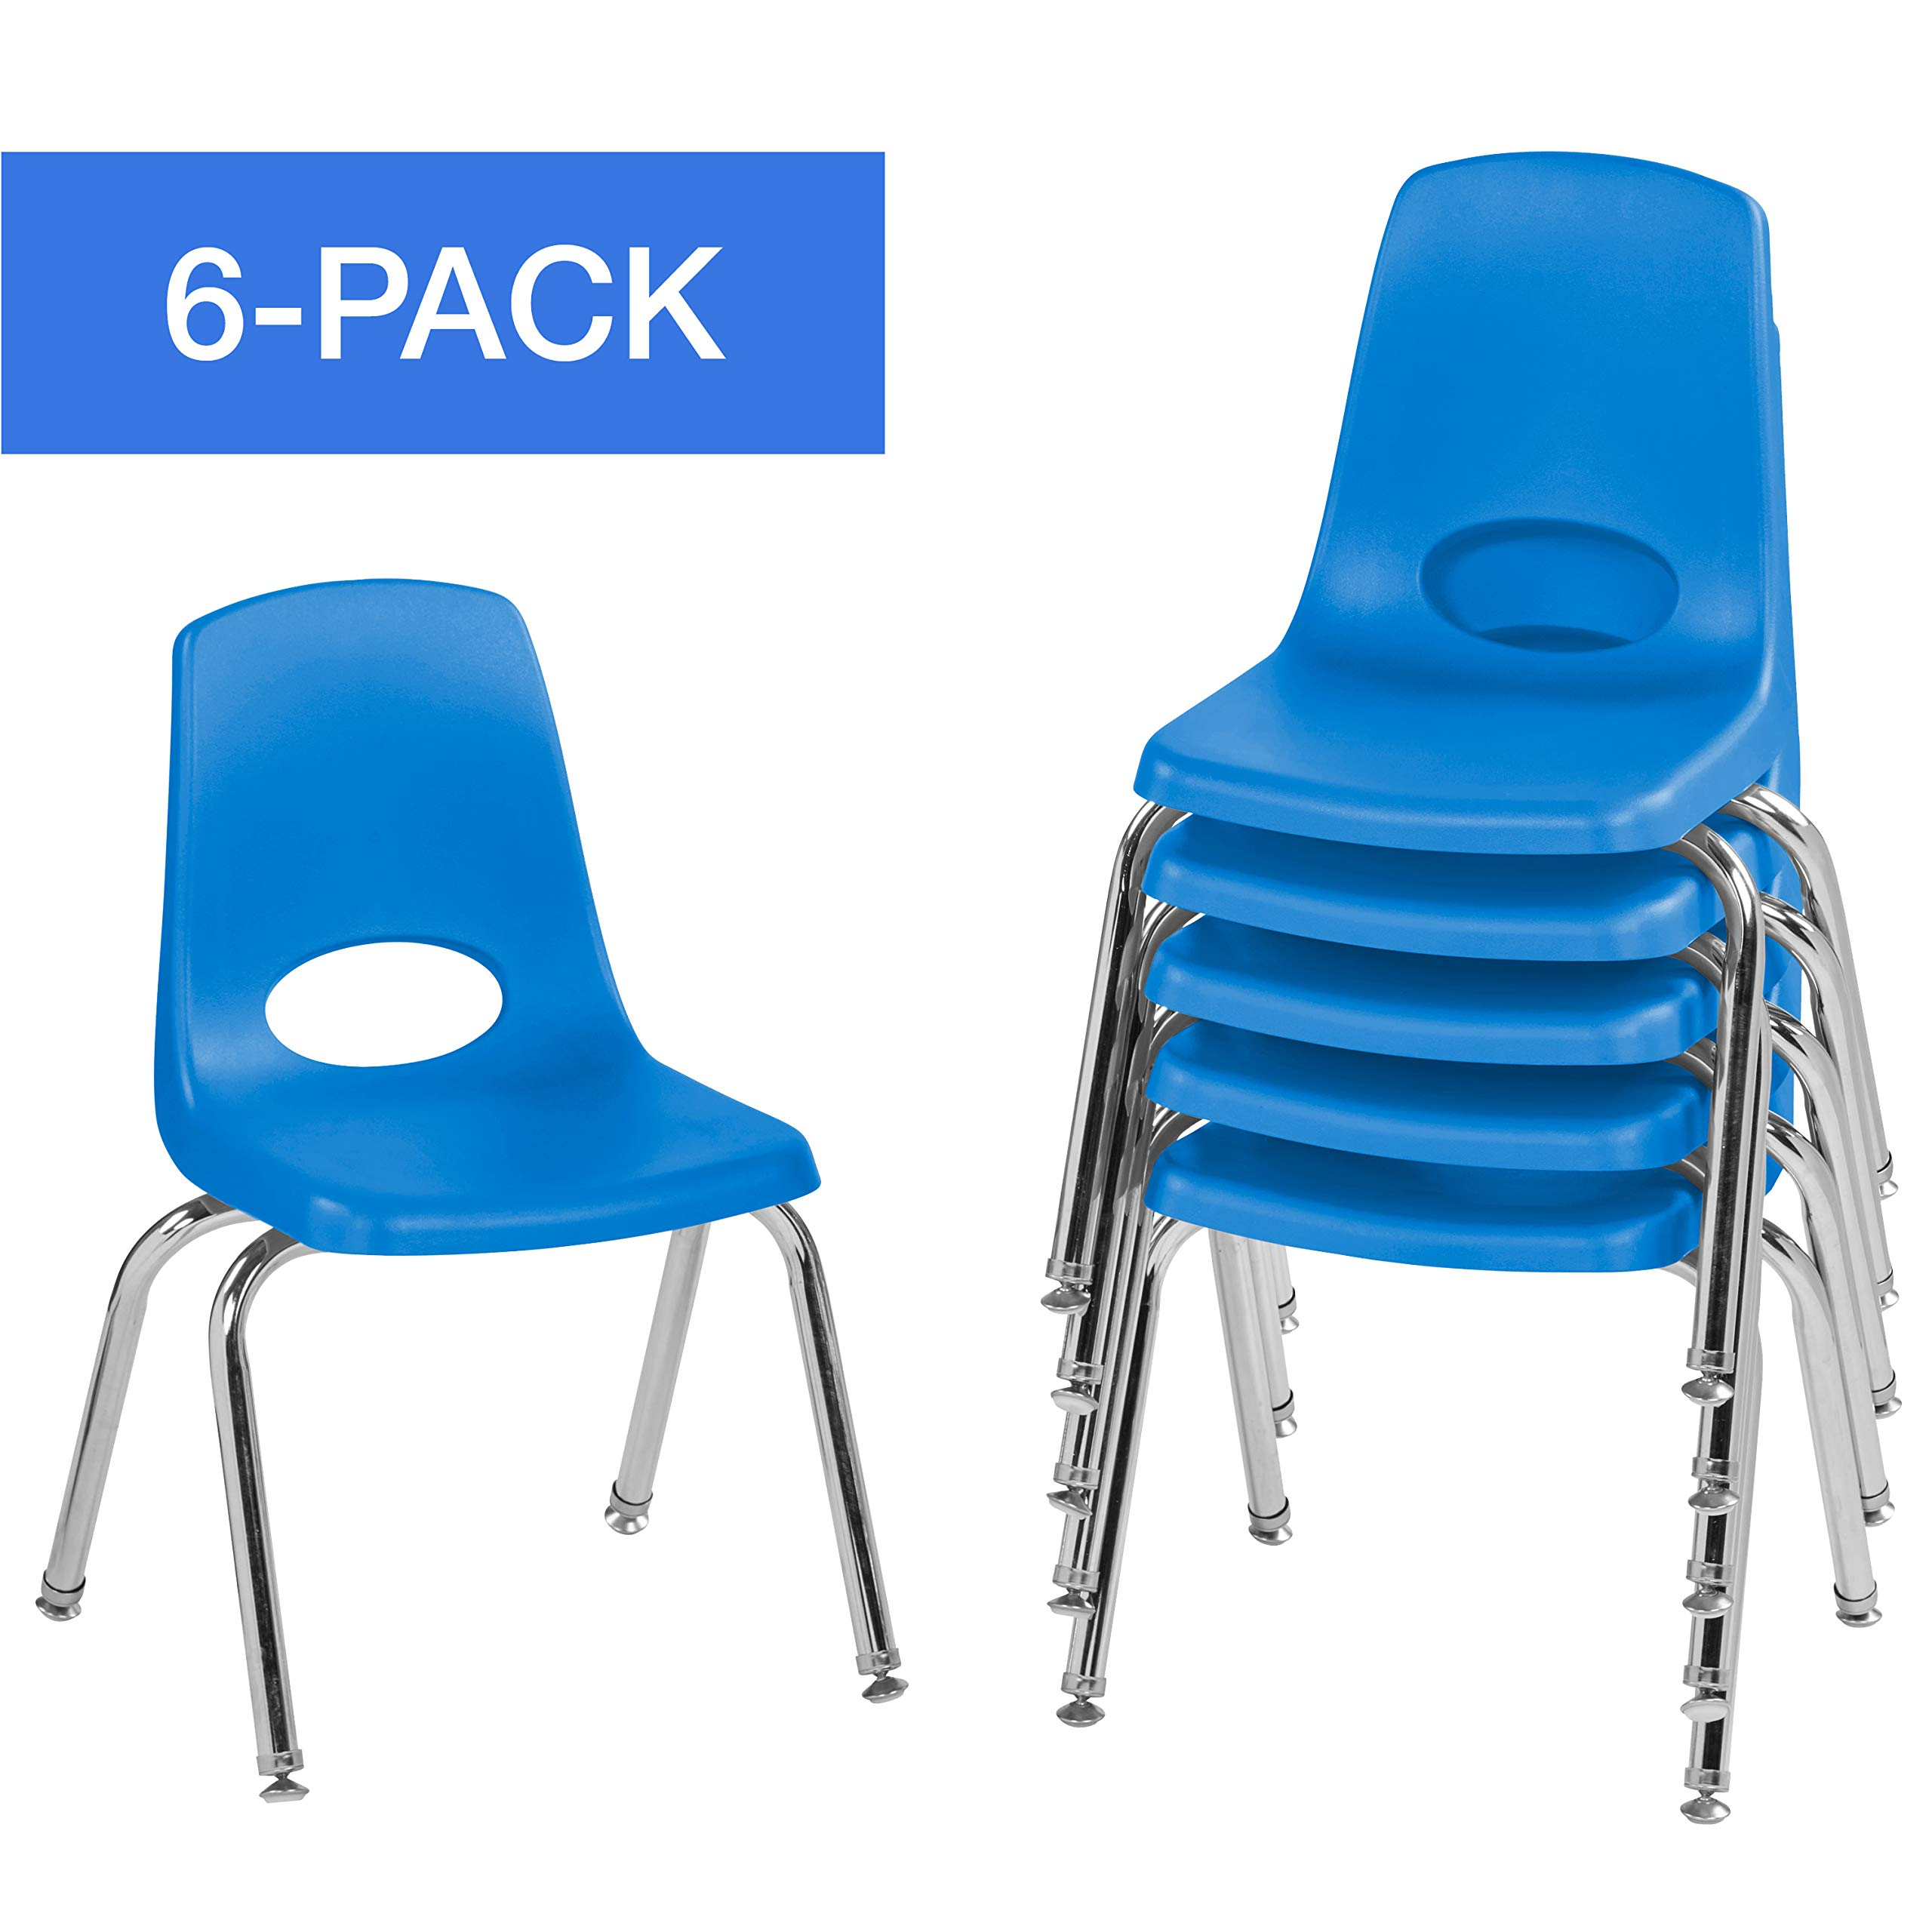 """Factory Direct Partners 14"""" School Stack Chair,Stacking Student Chairs with Chromed Steel Legs and Nylon Swivel Glides - Blue (6-Pack) (10364-BL)"""